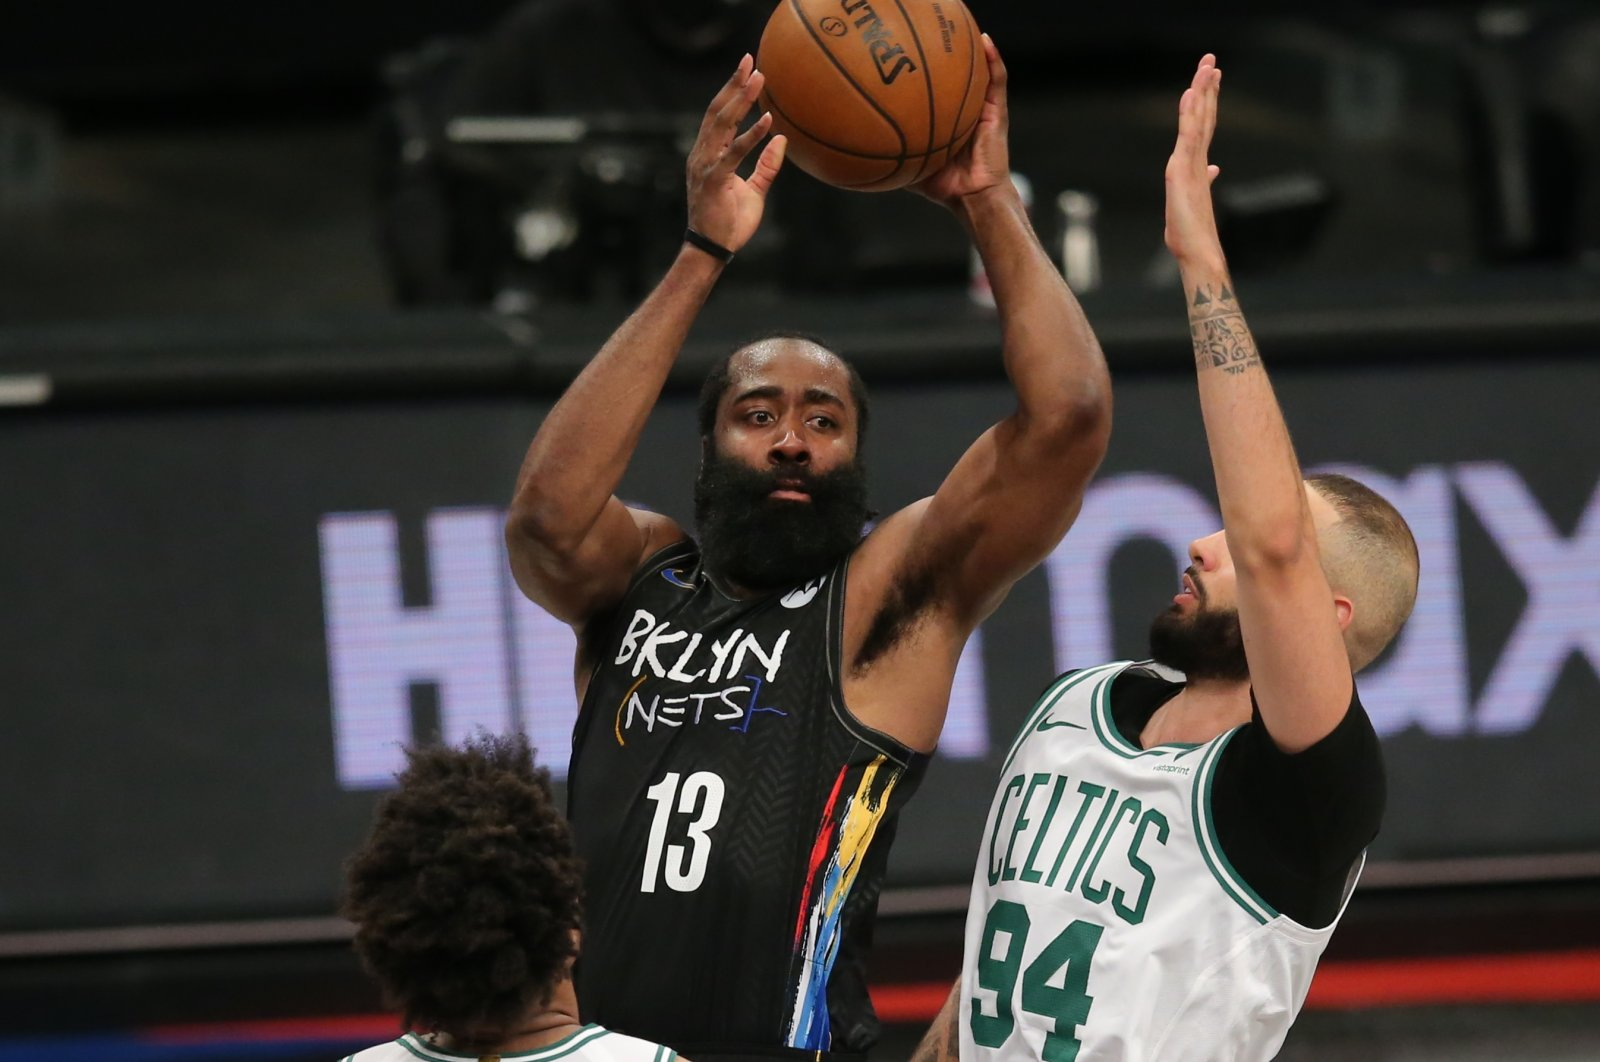 Brooklyn Nets shooting guard James Harden (C) looks to pass against Boston Celtics point guard Marcus Smart (L) and shooting guard Evan Fournier (R) during their 2021 NBA Playoffs at Barclays Center, Jun 1, 2021, Brooklyn, New York, U.S. (Reuters Photo)